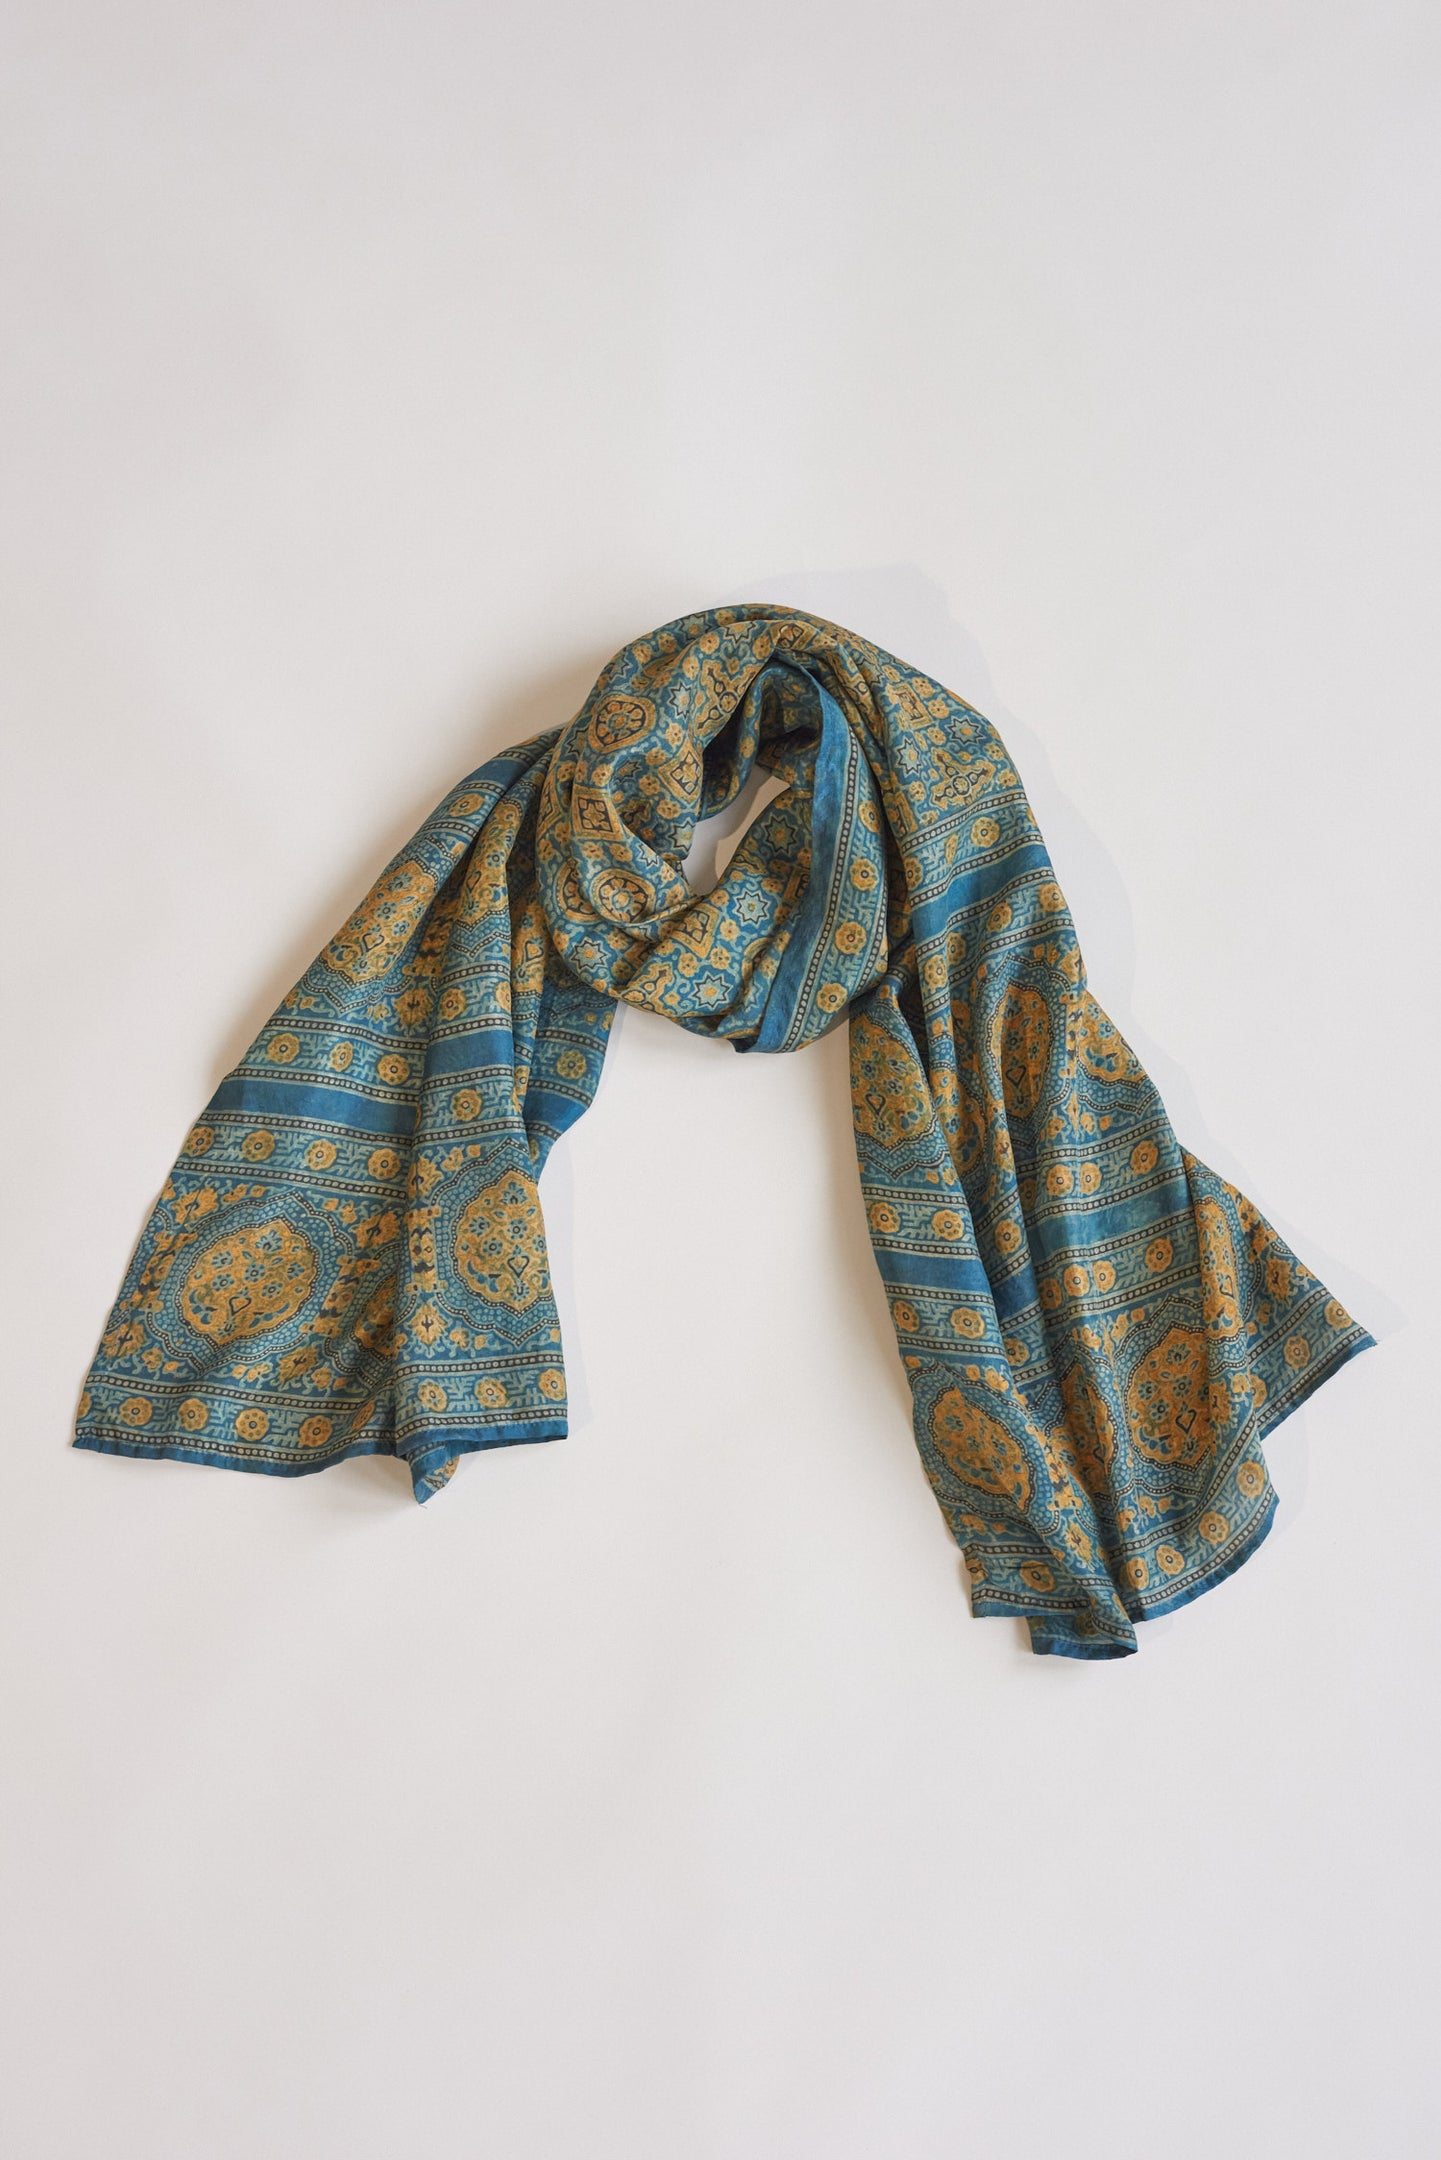 Koel, Dyed Silk Scarf Blue and Ochre